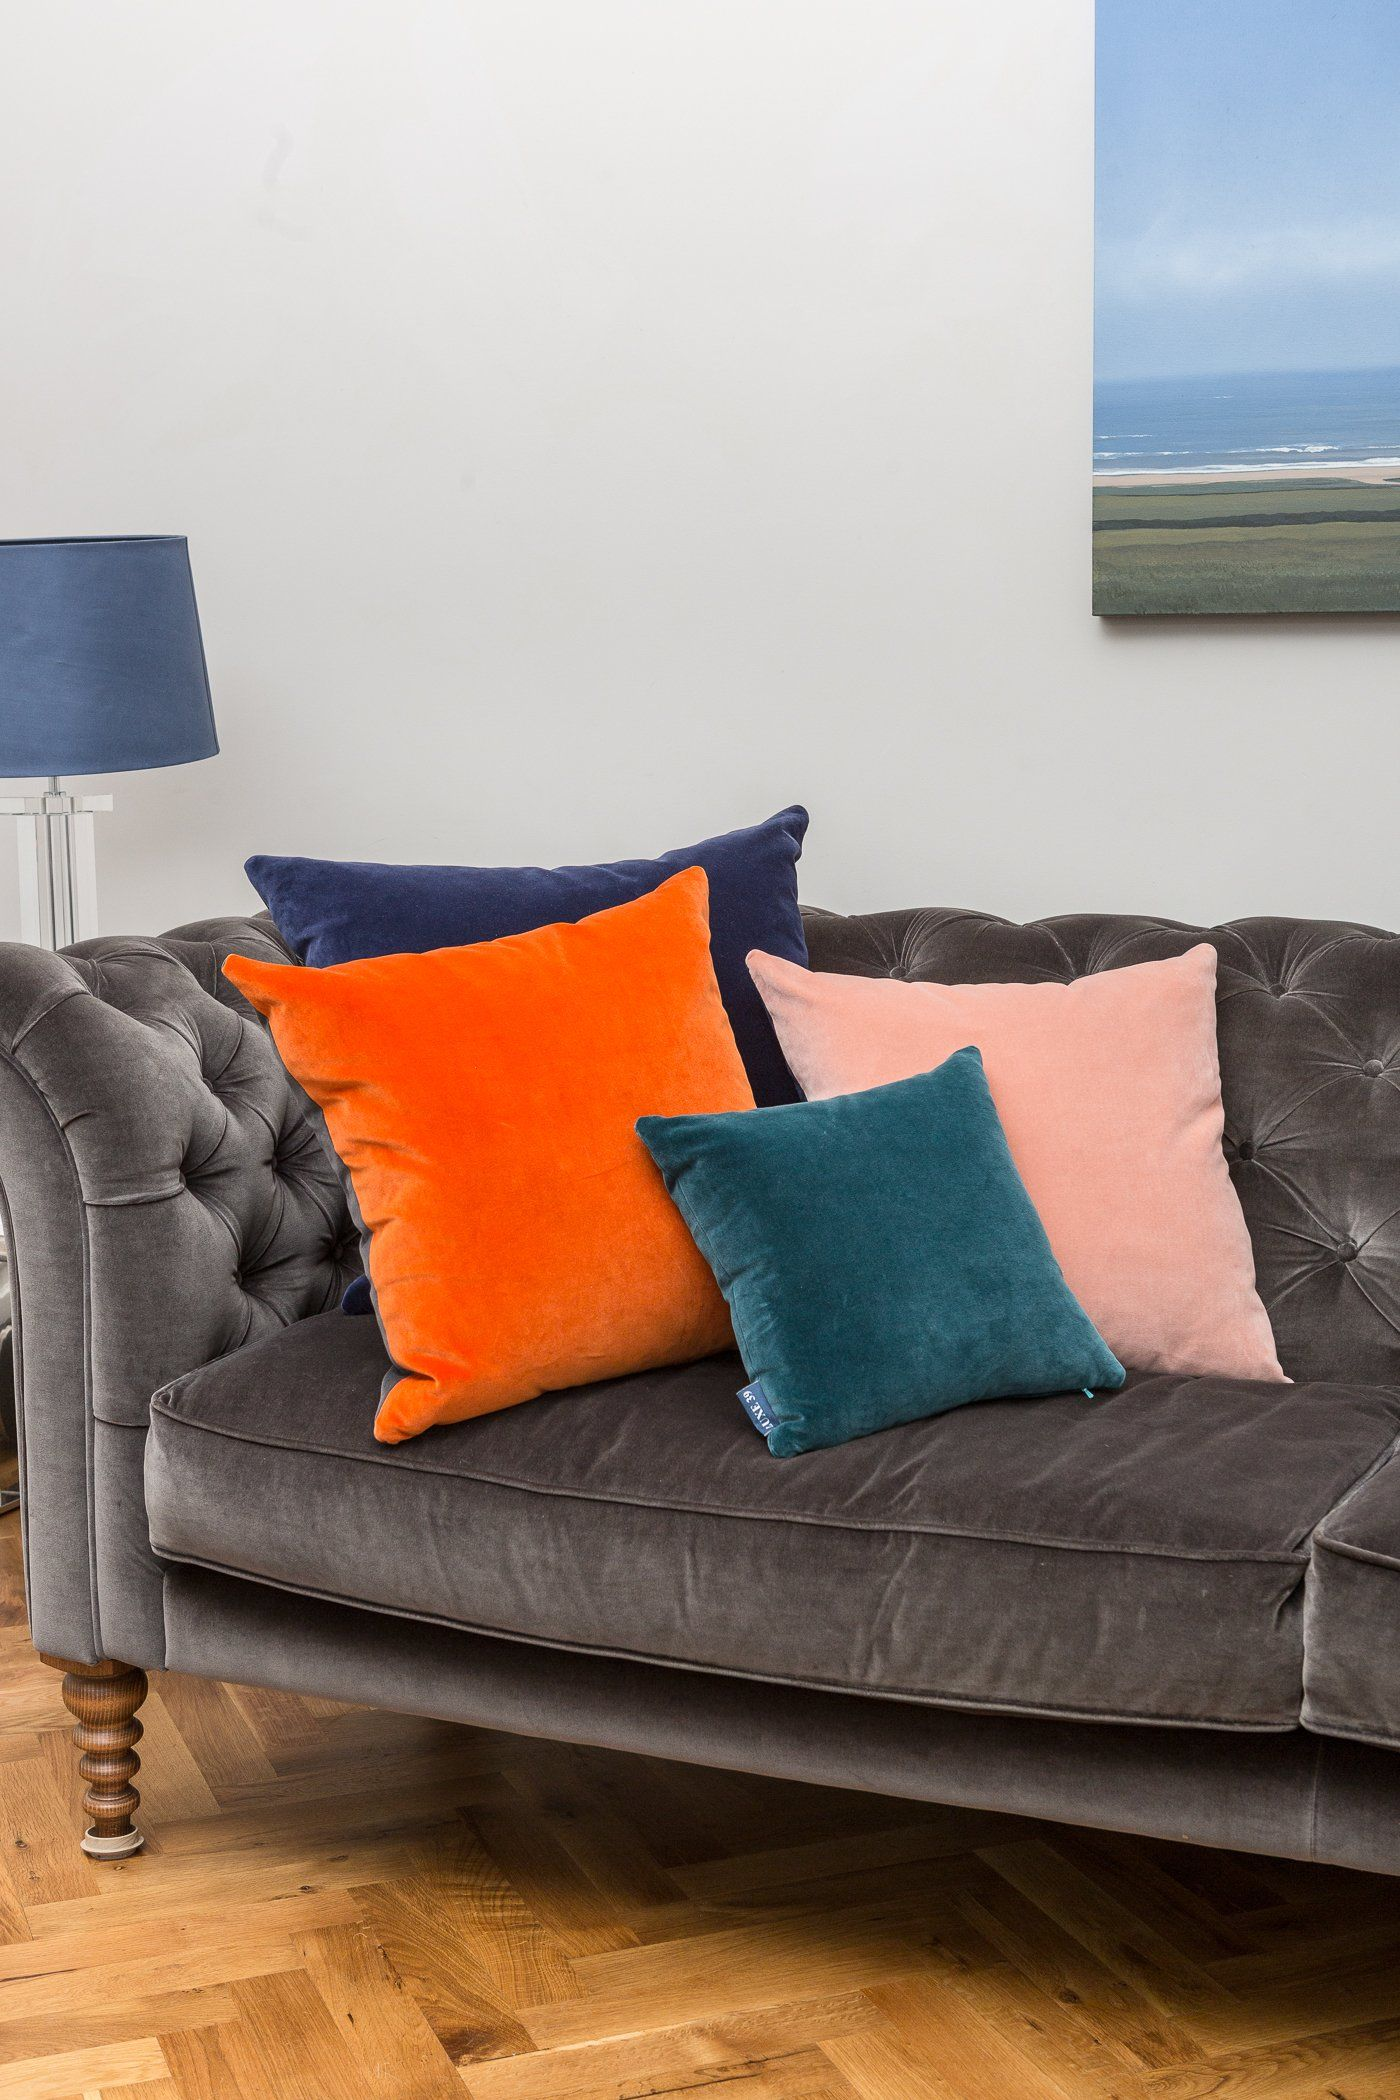 Luxury Velvet Cushions By Luxe 39 Blush Pink Velvet Cushion Burnt Orange Velvet Cushions And Teal Living Room Orange Cushions On Sofa Cushions For Grey Sofa